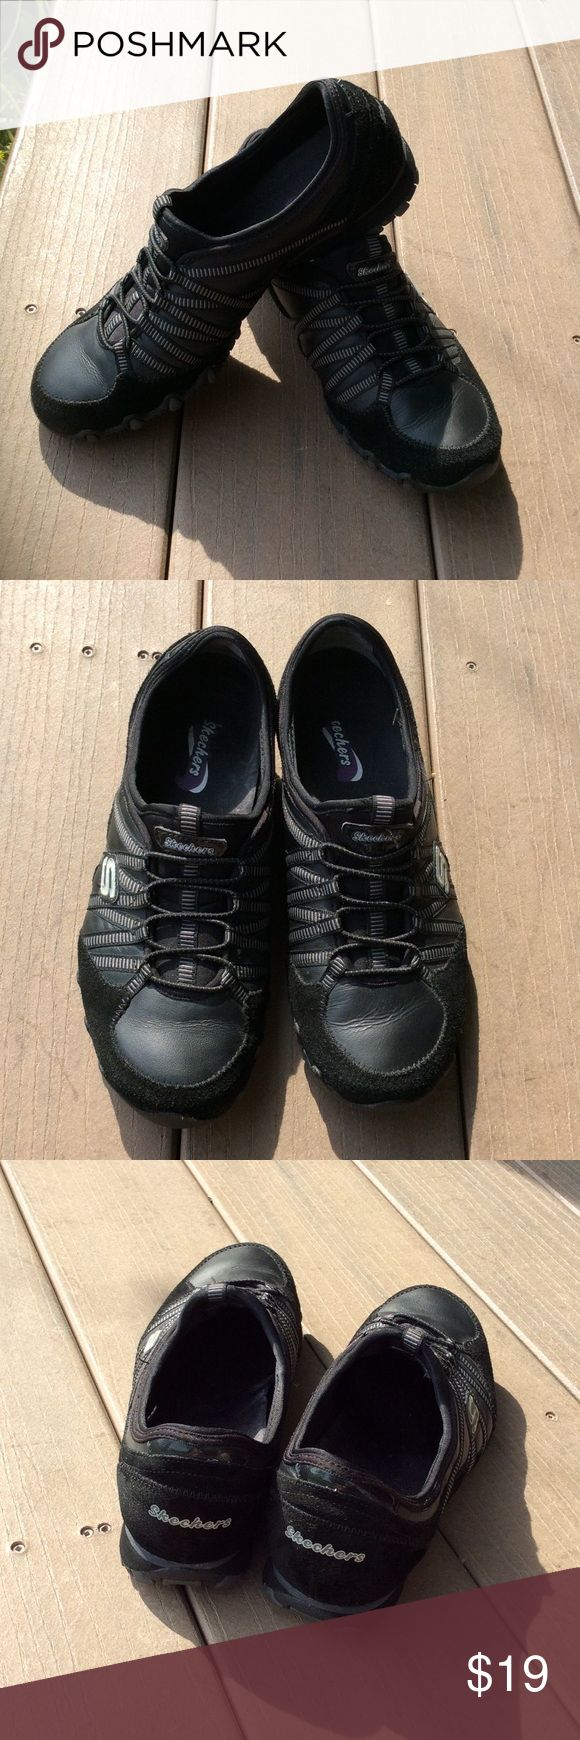 Black Skechers slip on shoes, like new, size 7.5 These are very gently worn skecher shoes in black. Perfect for slipping on for a quick walk. Super comfy and comes from a smoke free and pet free home. Size 7.5 runs true to size. Skechers Shoes Sneakers